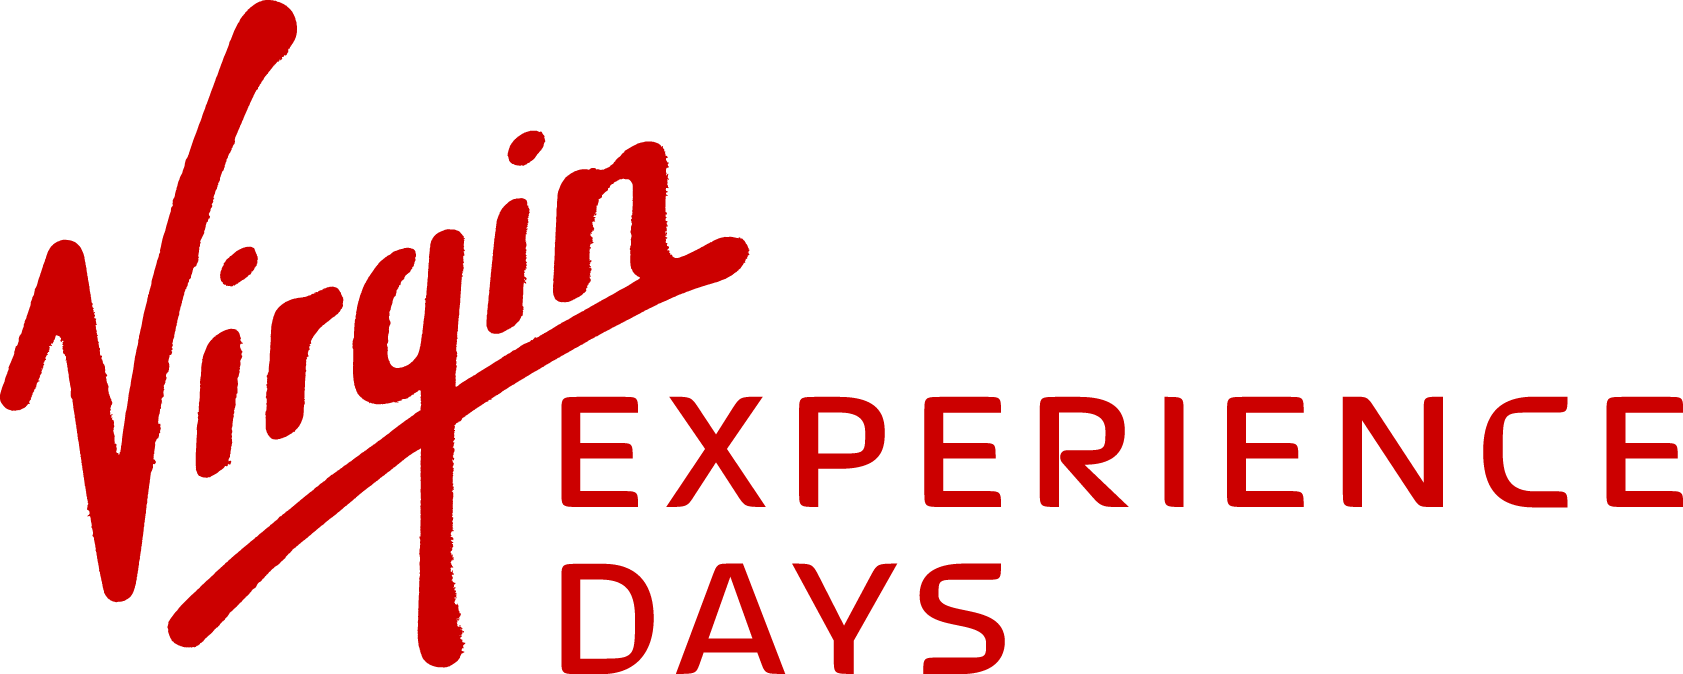 VED-red-logo.png